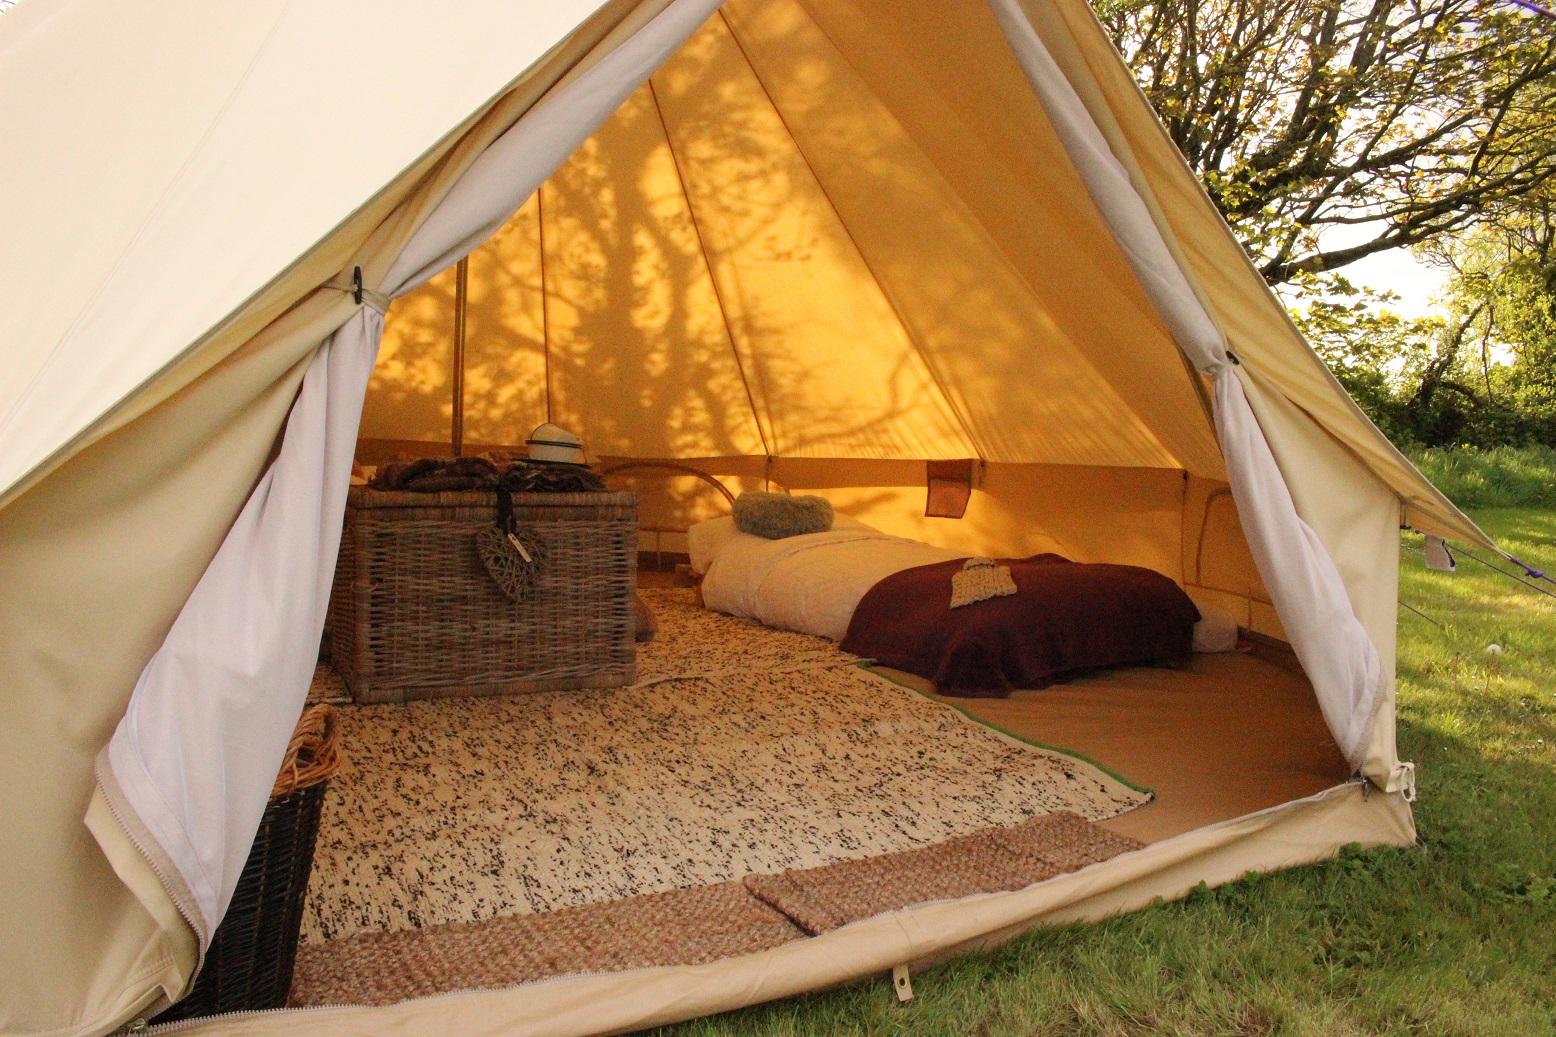 Each bell tent comes with a comfortable double futon bed and two removable singles. The beds are made ready for your arrival with all bedding blankets and ... & Bell Tent Glamping ? Stackpole Under the Stars